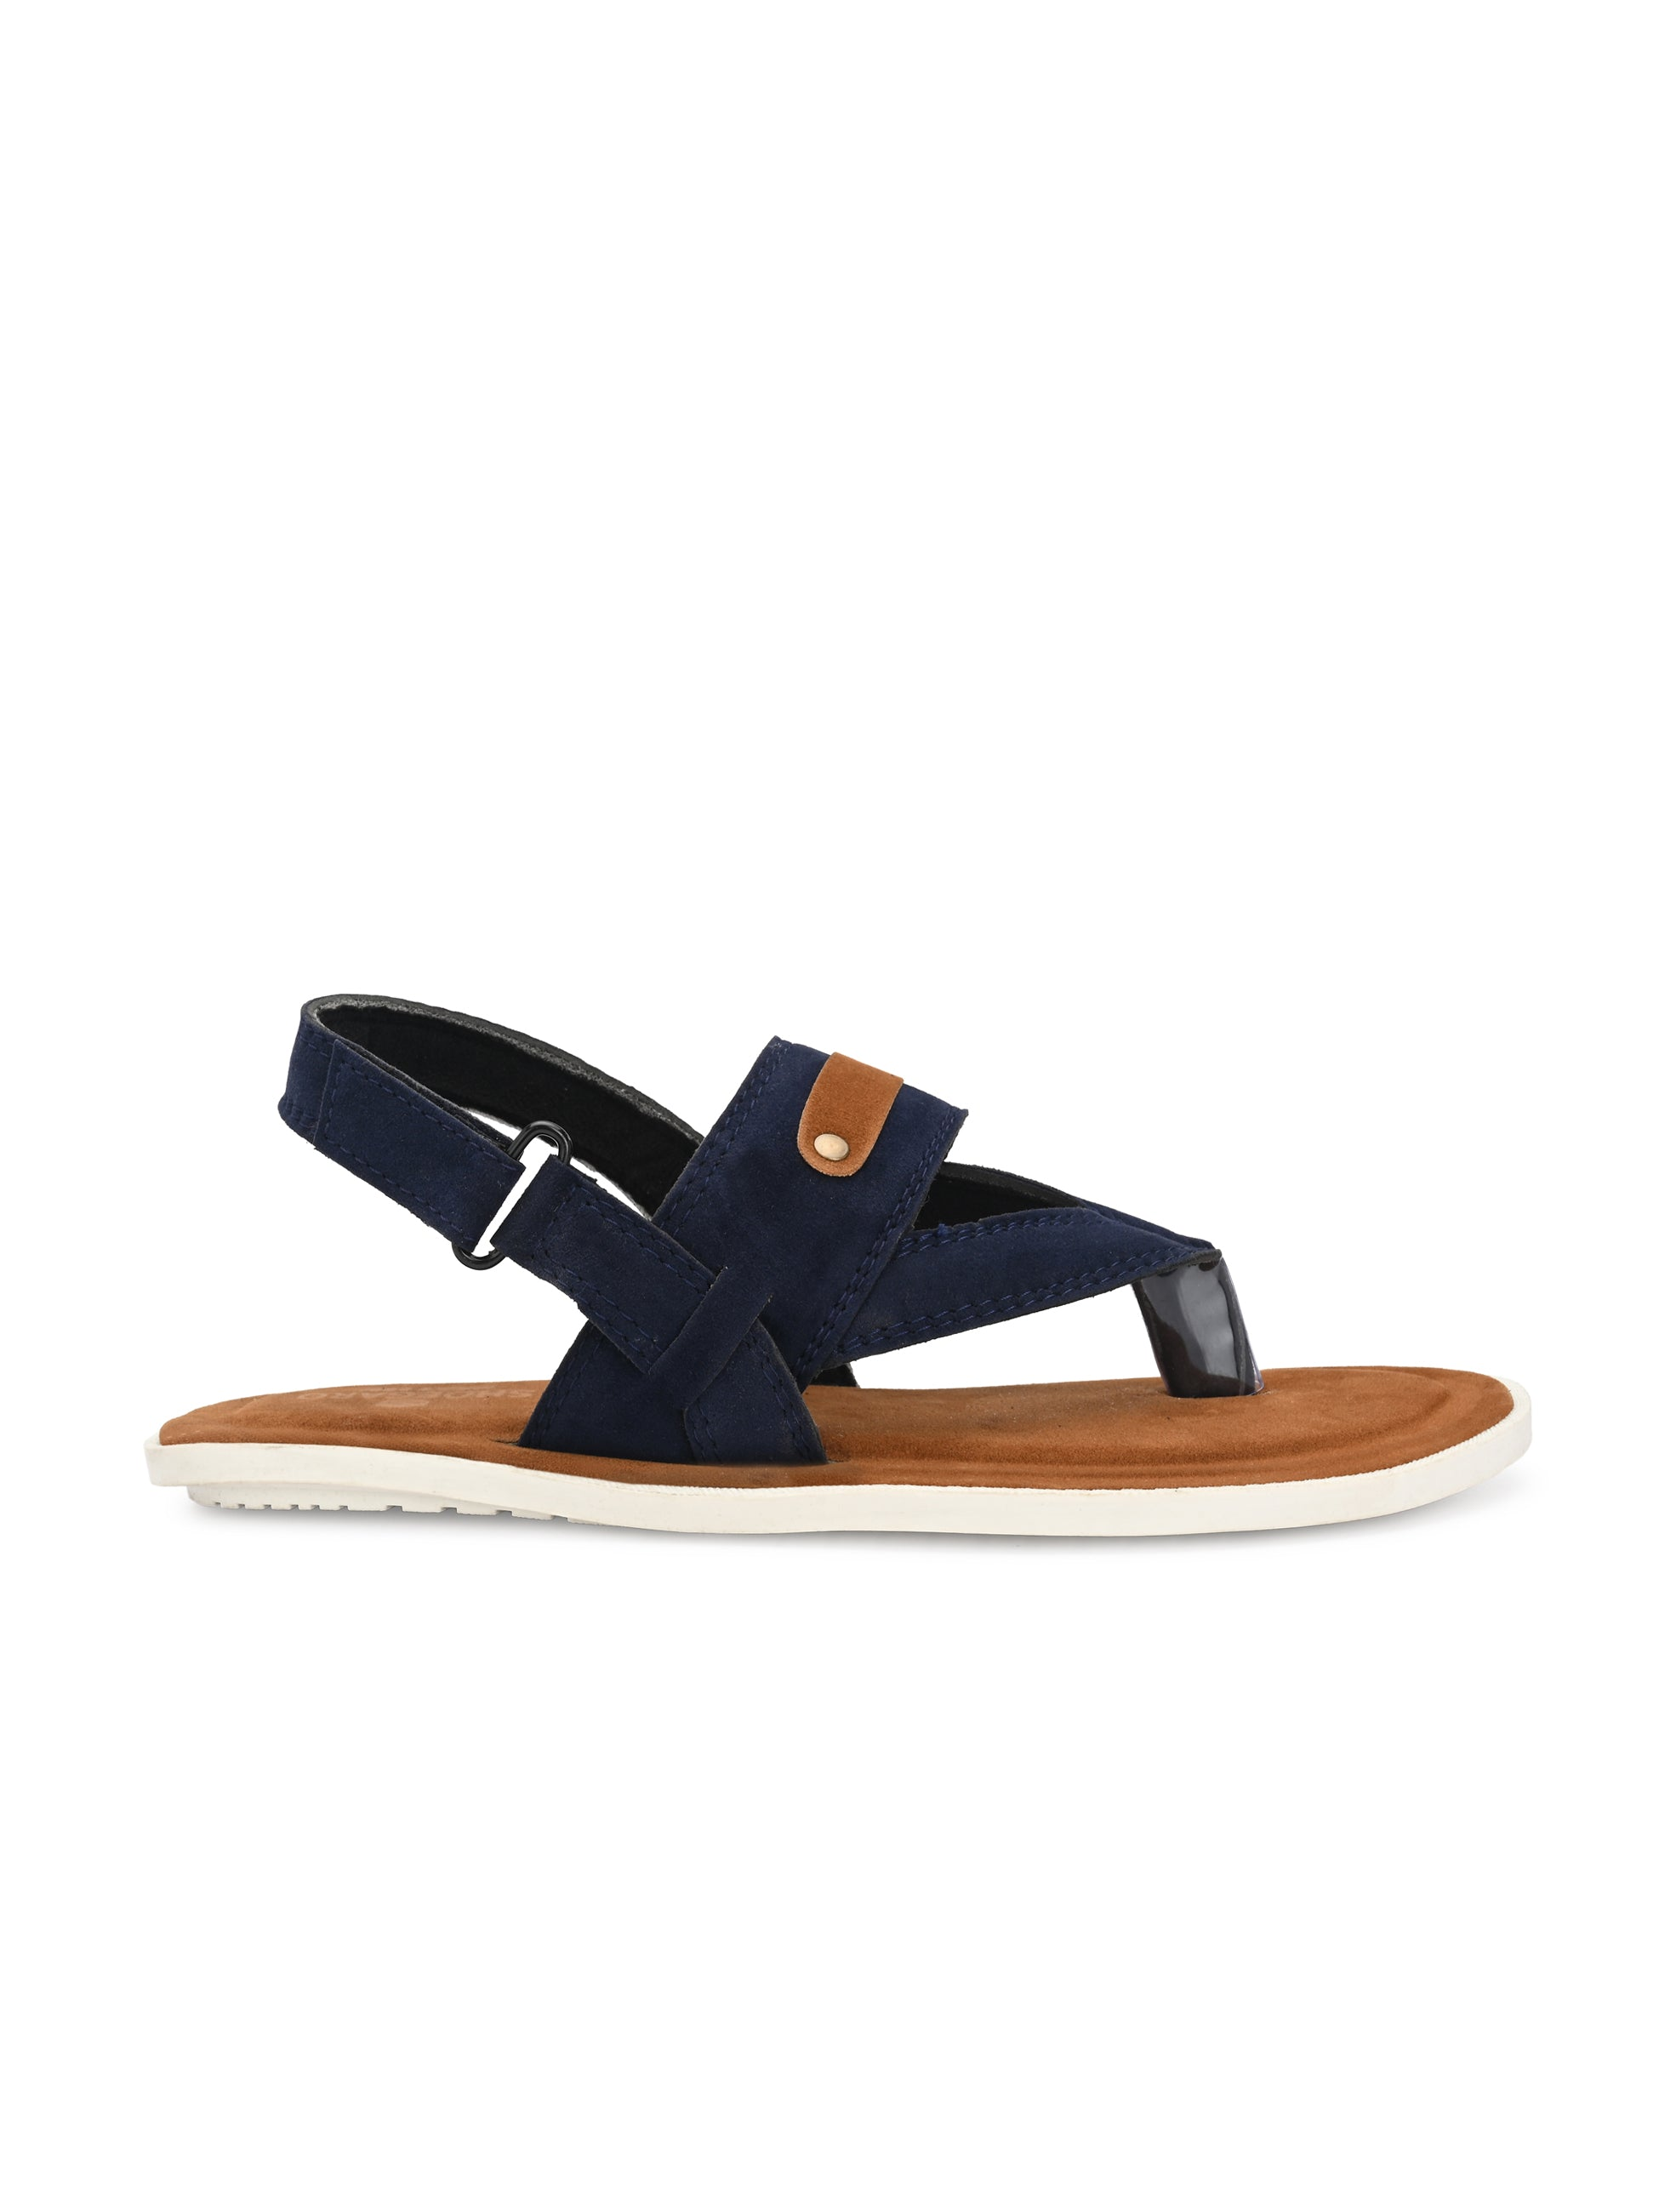 Blue Thong Strap Sandal - shoegaro